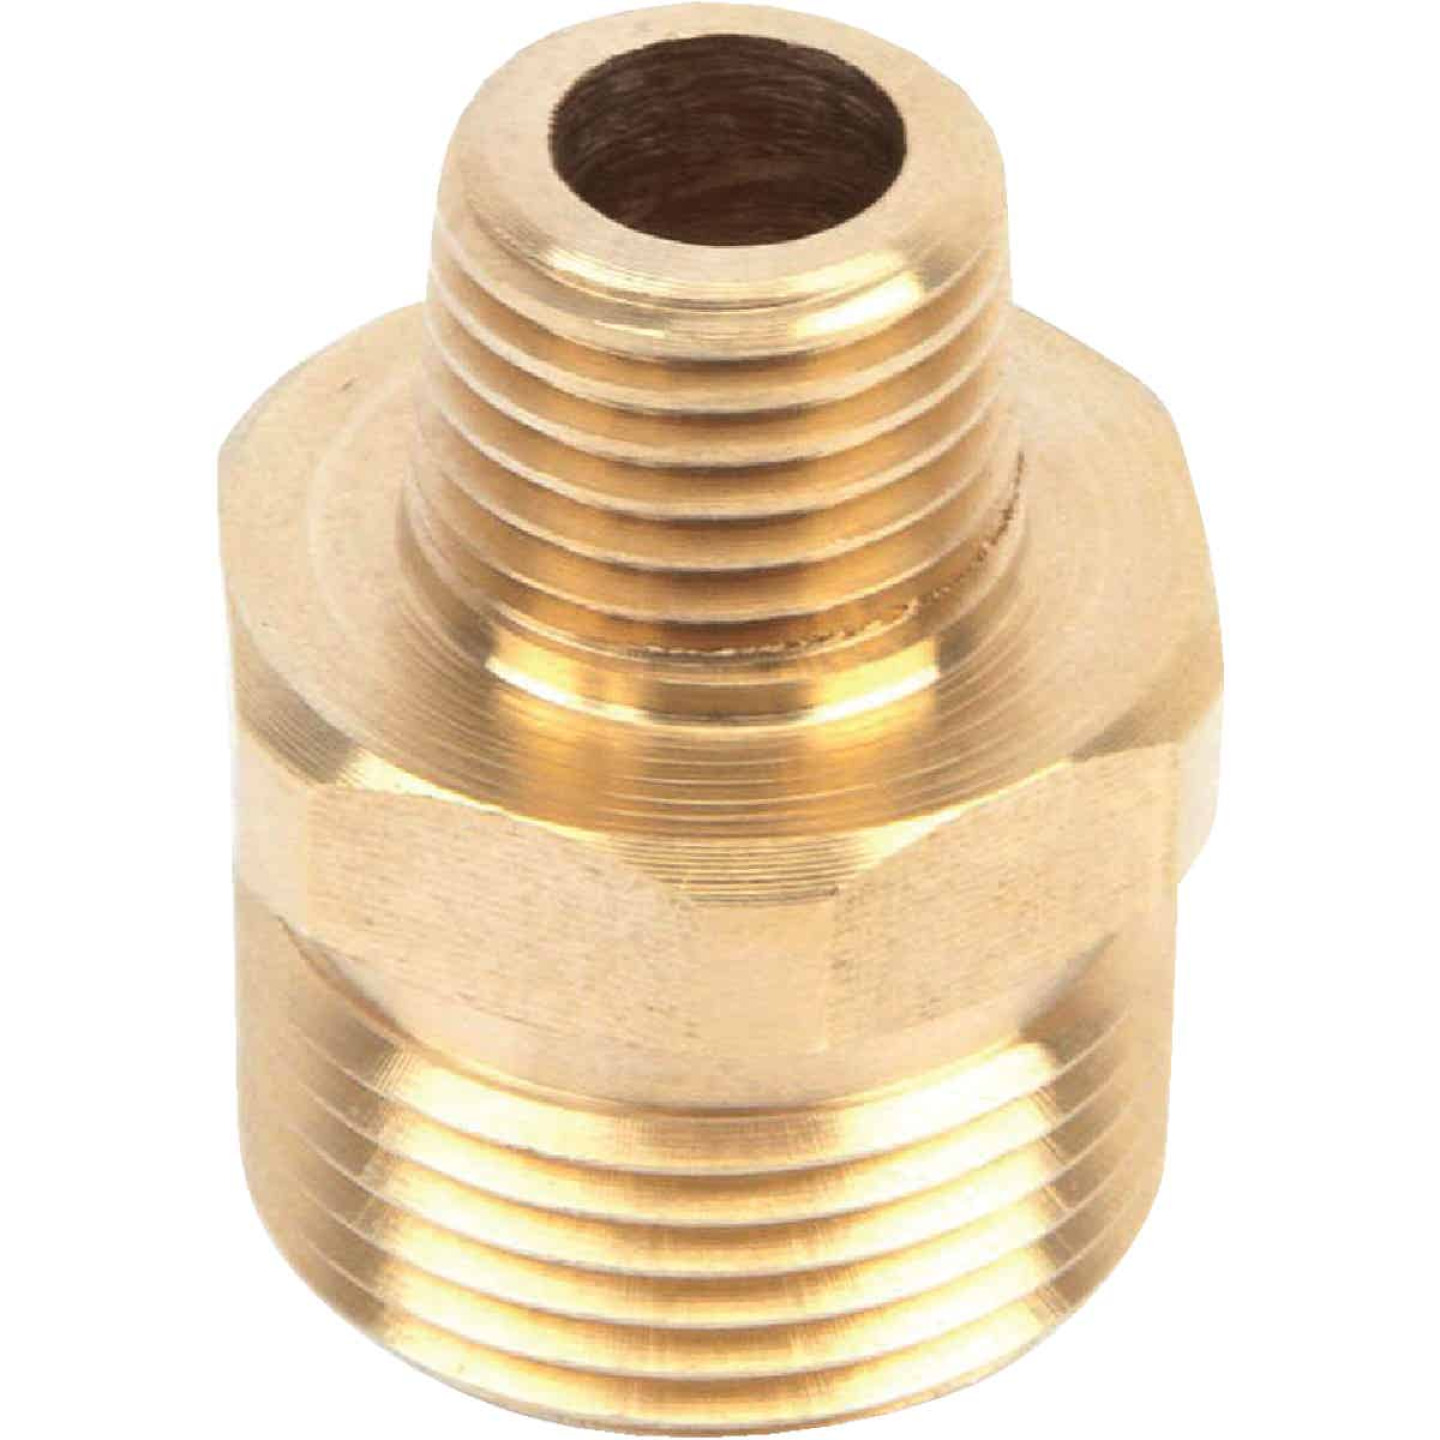 Forney 1/4 In. Male Pressure Washer Screw Nipple Image 3